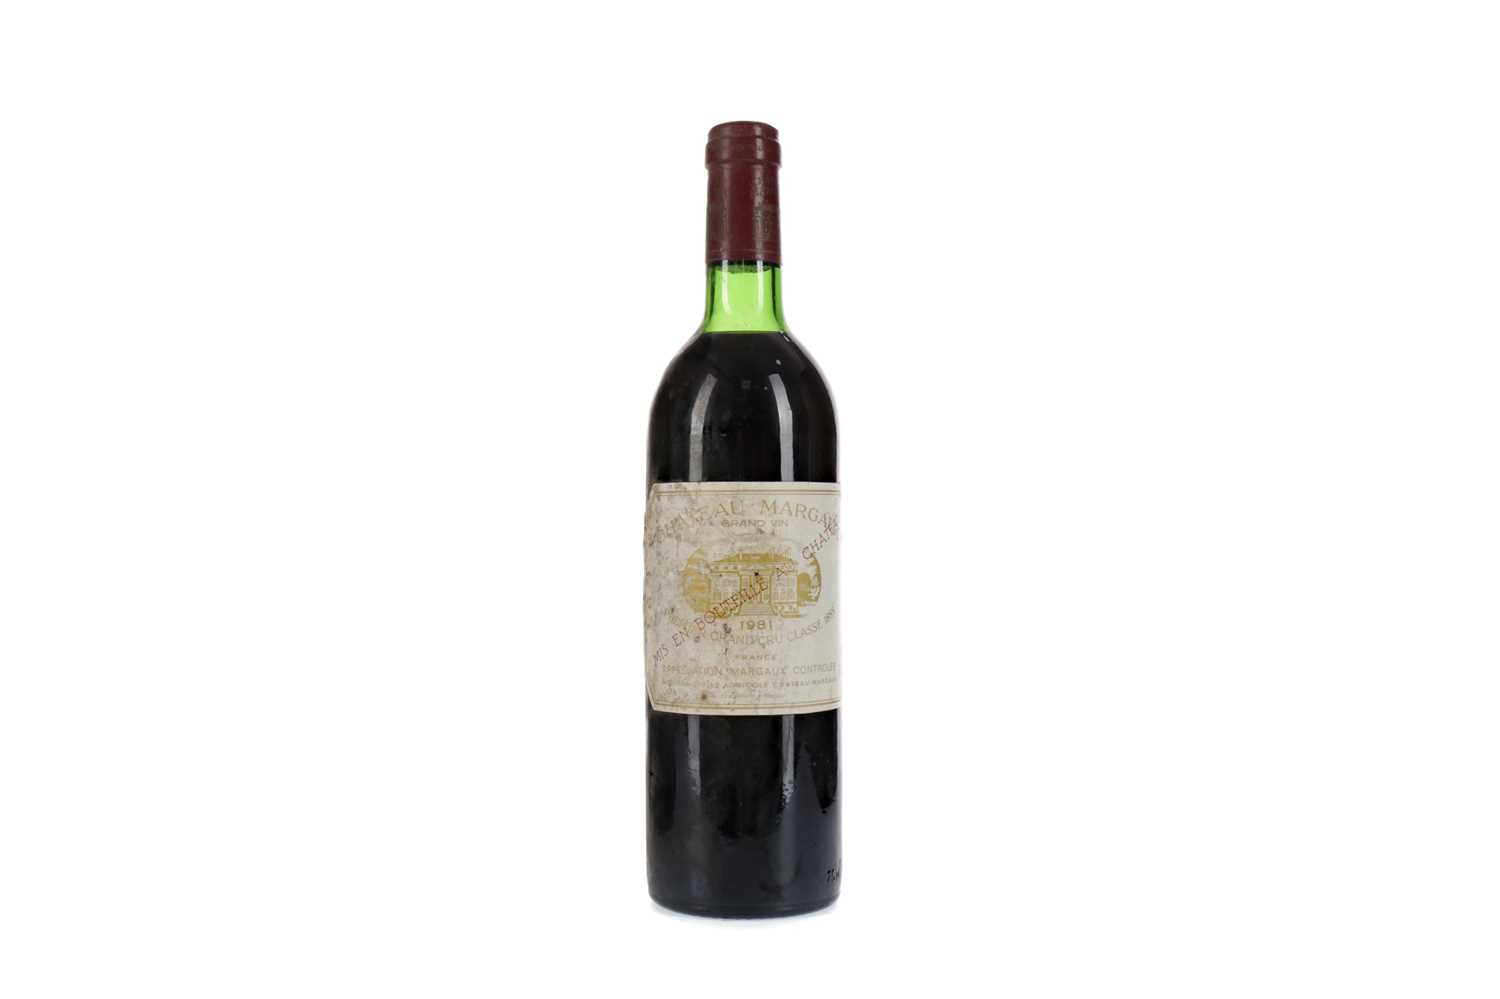 Lot 16 - CHATEAU MARGAUX 1981